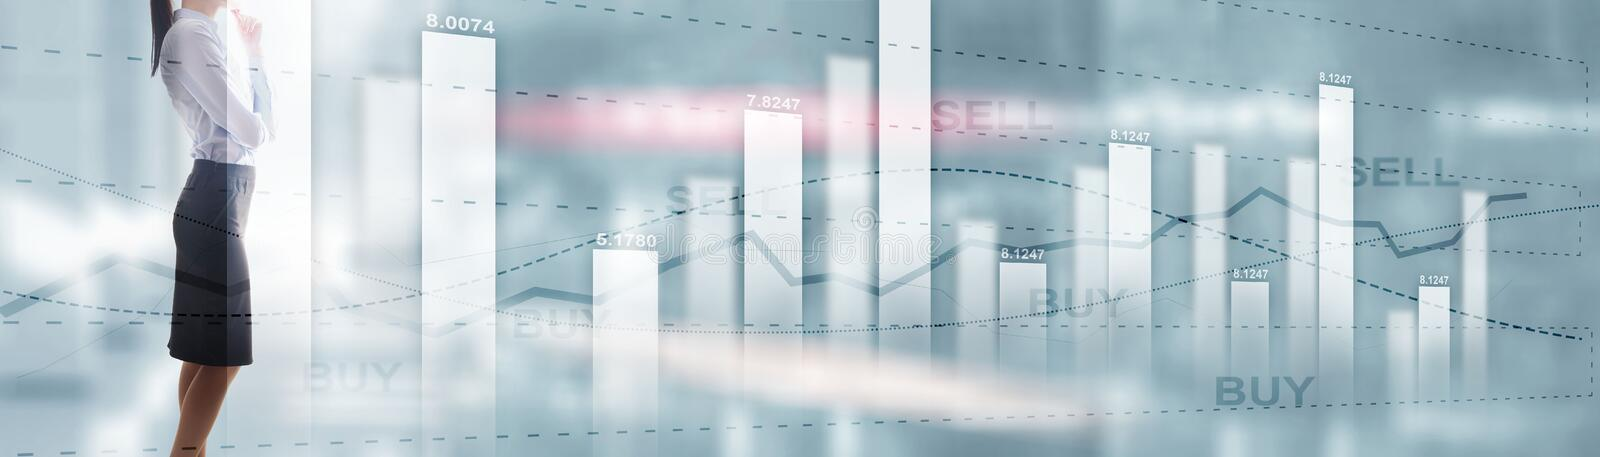 Buy and sell finacial concept. Business Graph Stock Market chart. Digital charts and screen interface. Panoramic banner. Buy and sell finacial concept. Business stock image